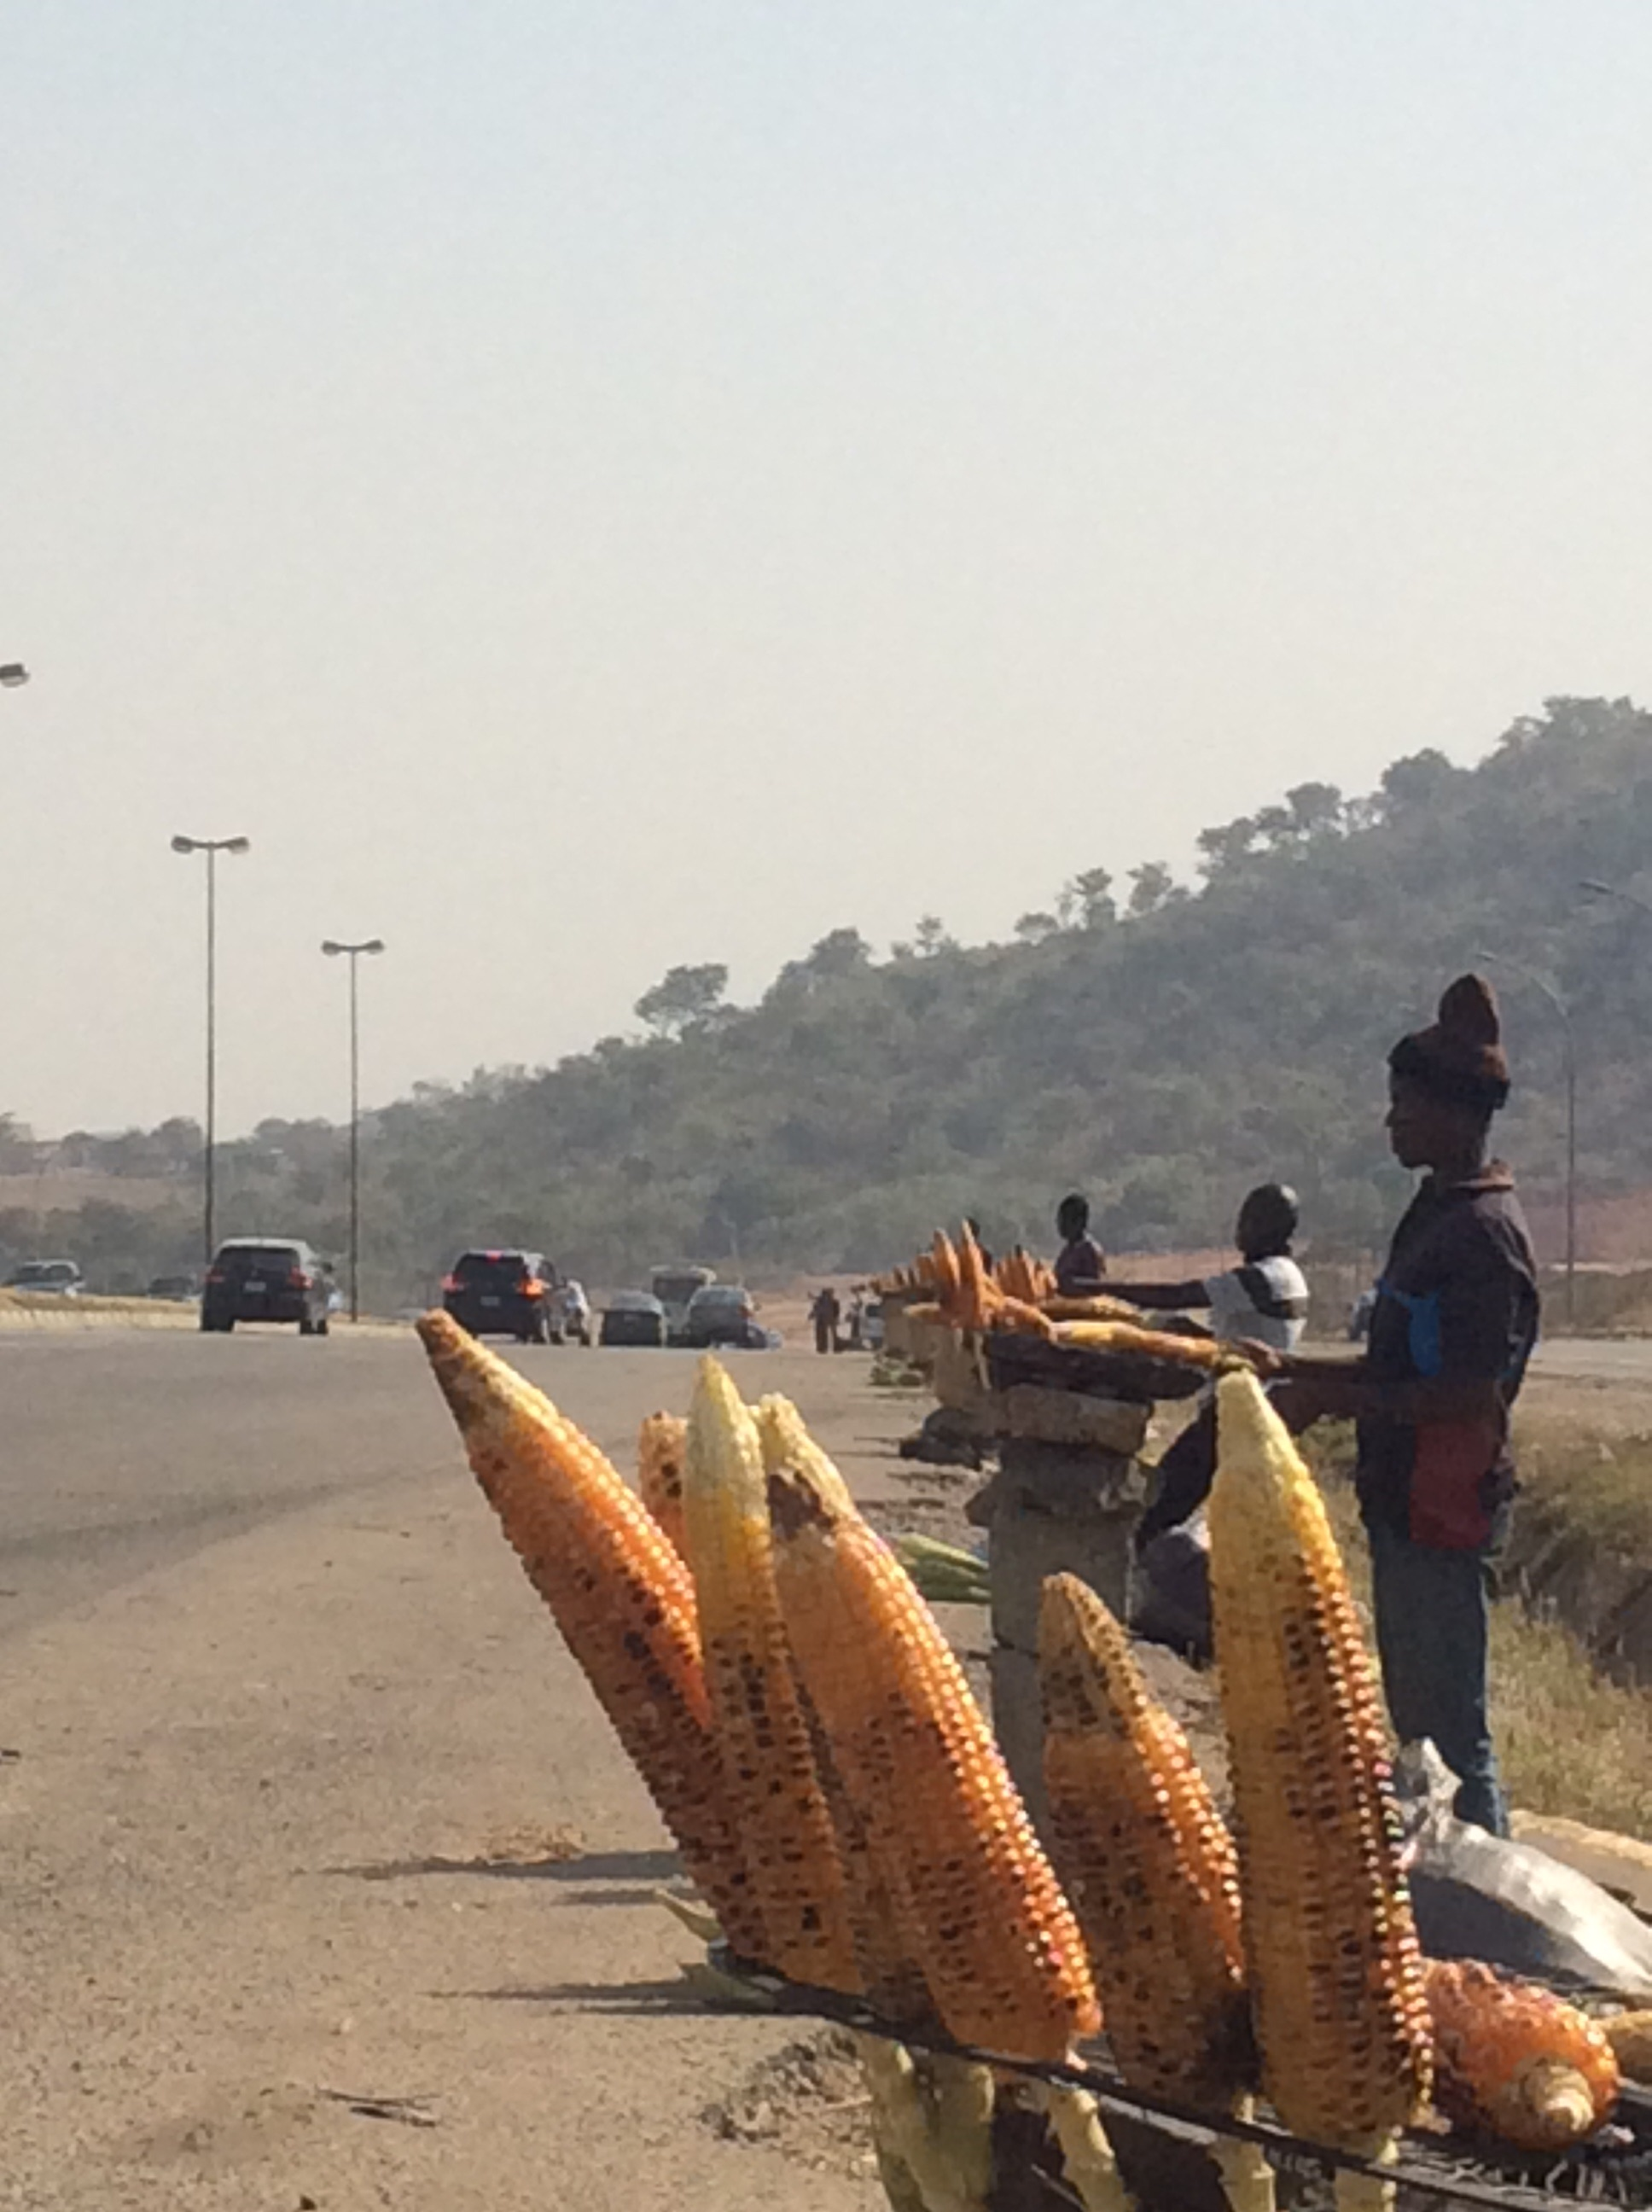 Motorists drop by regularly to enjoy this tasty corn... Are you drooling yet?